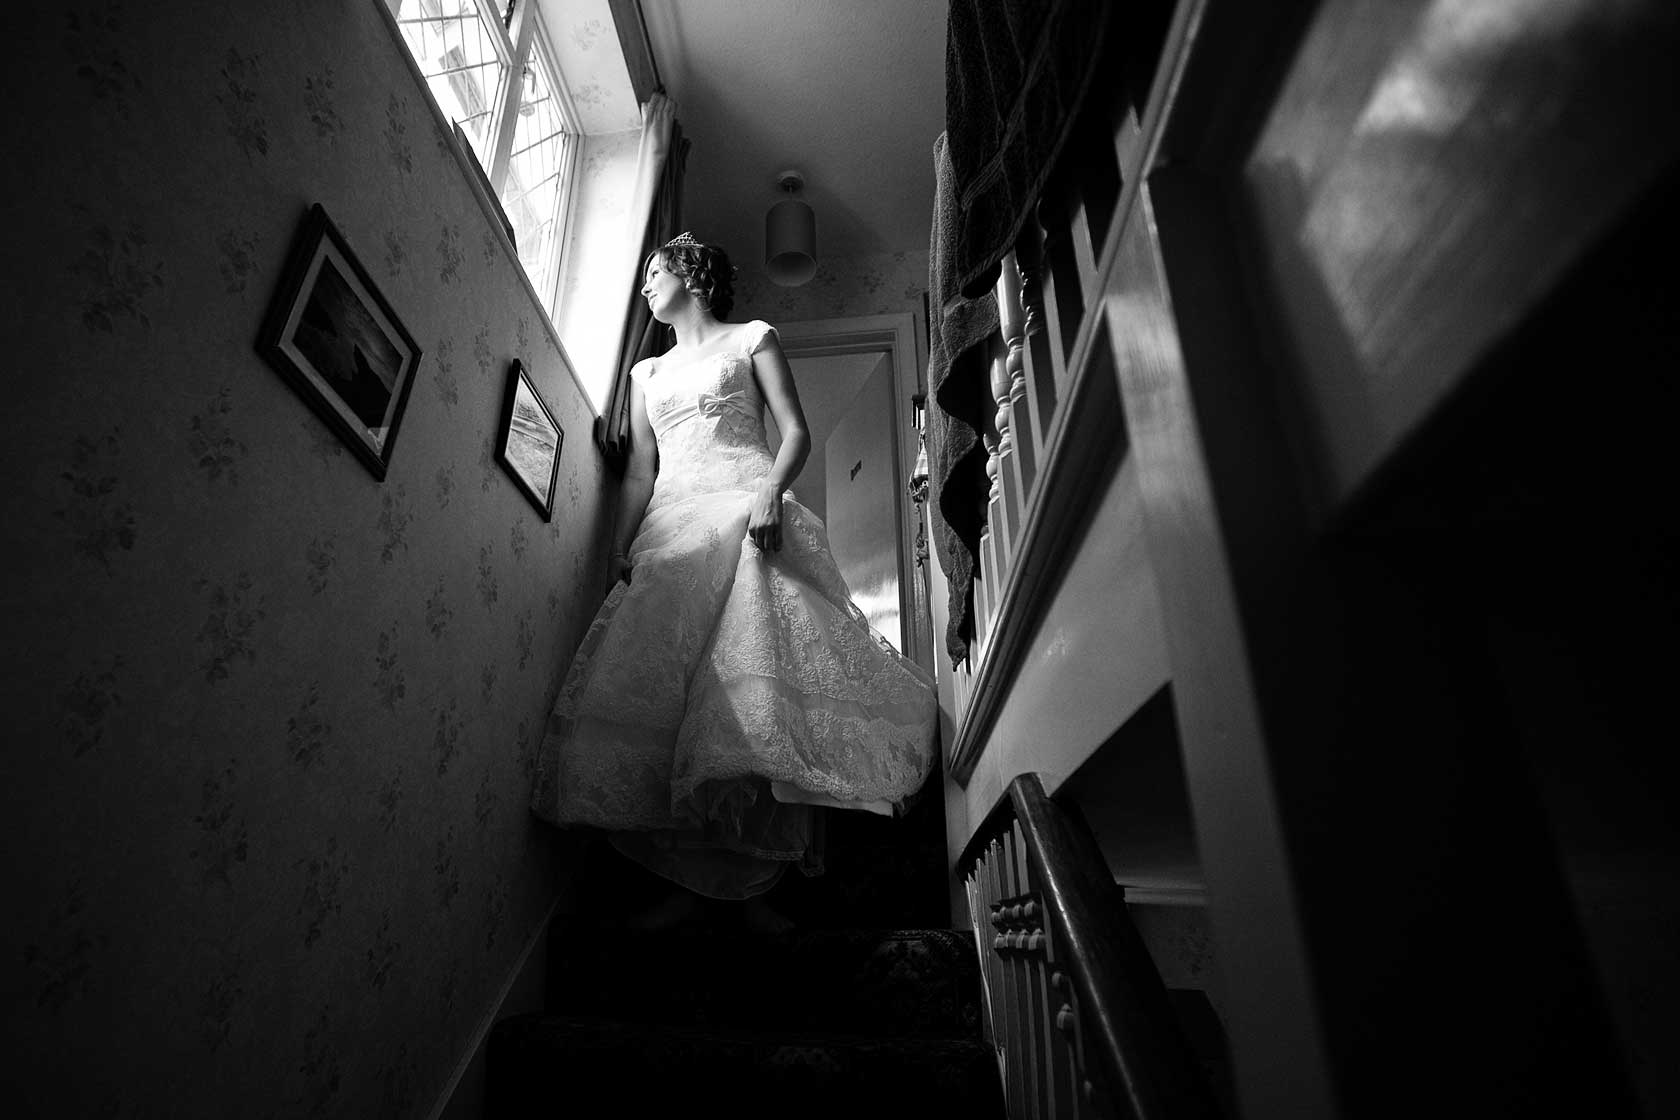 Wedding Photography at The White Swan